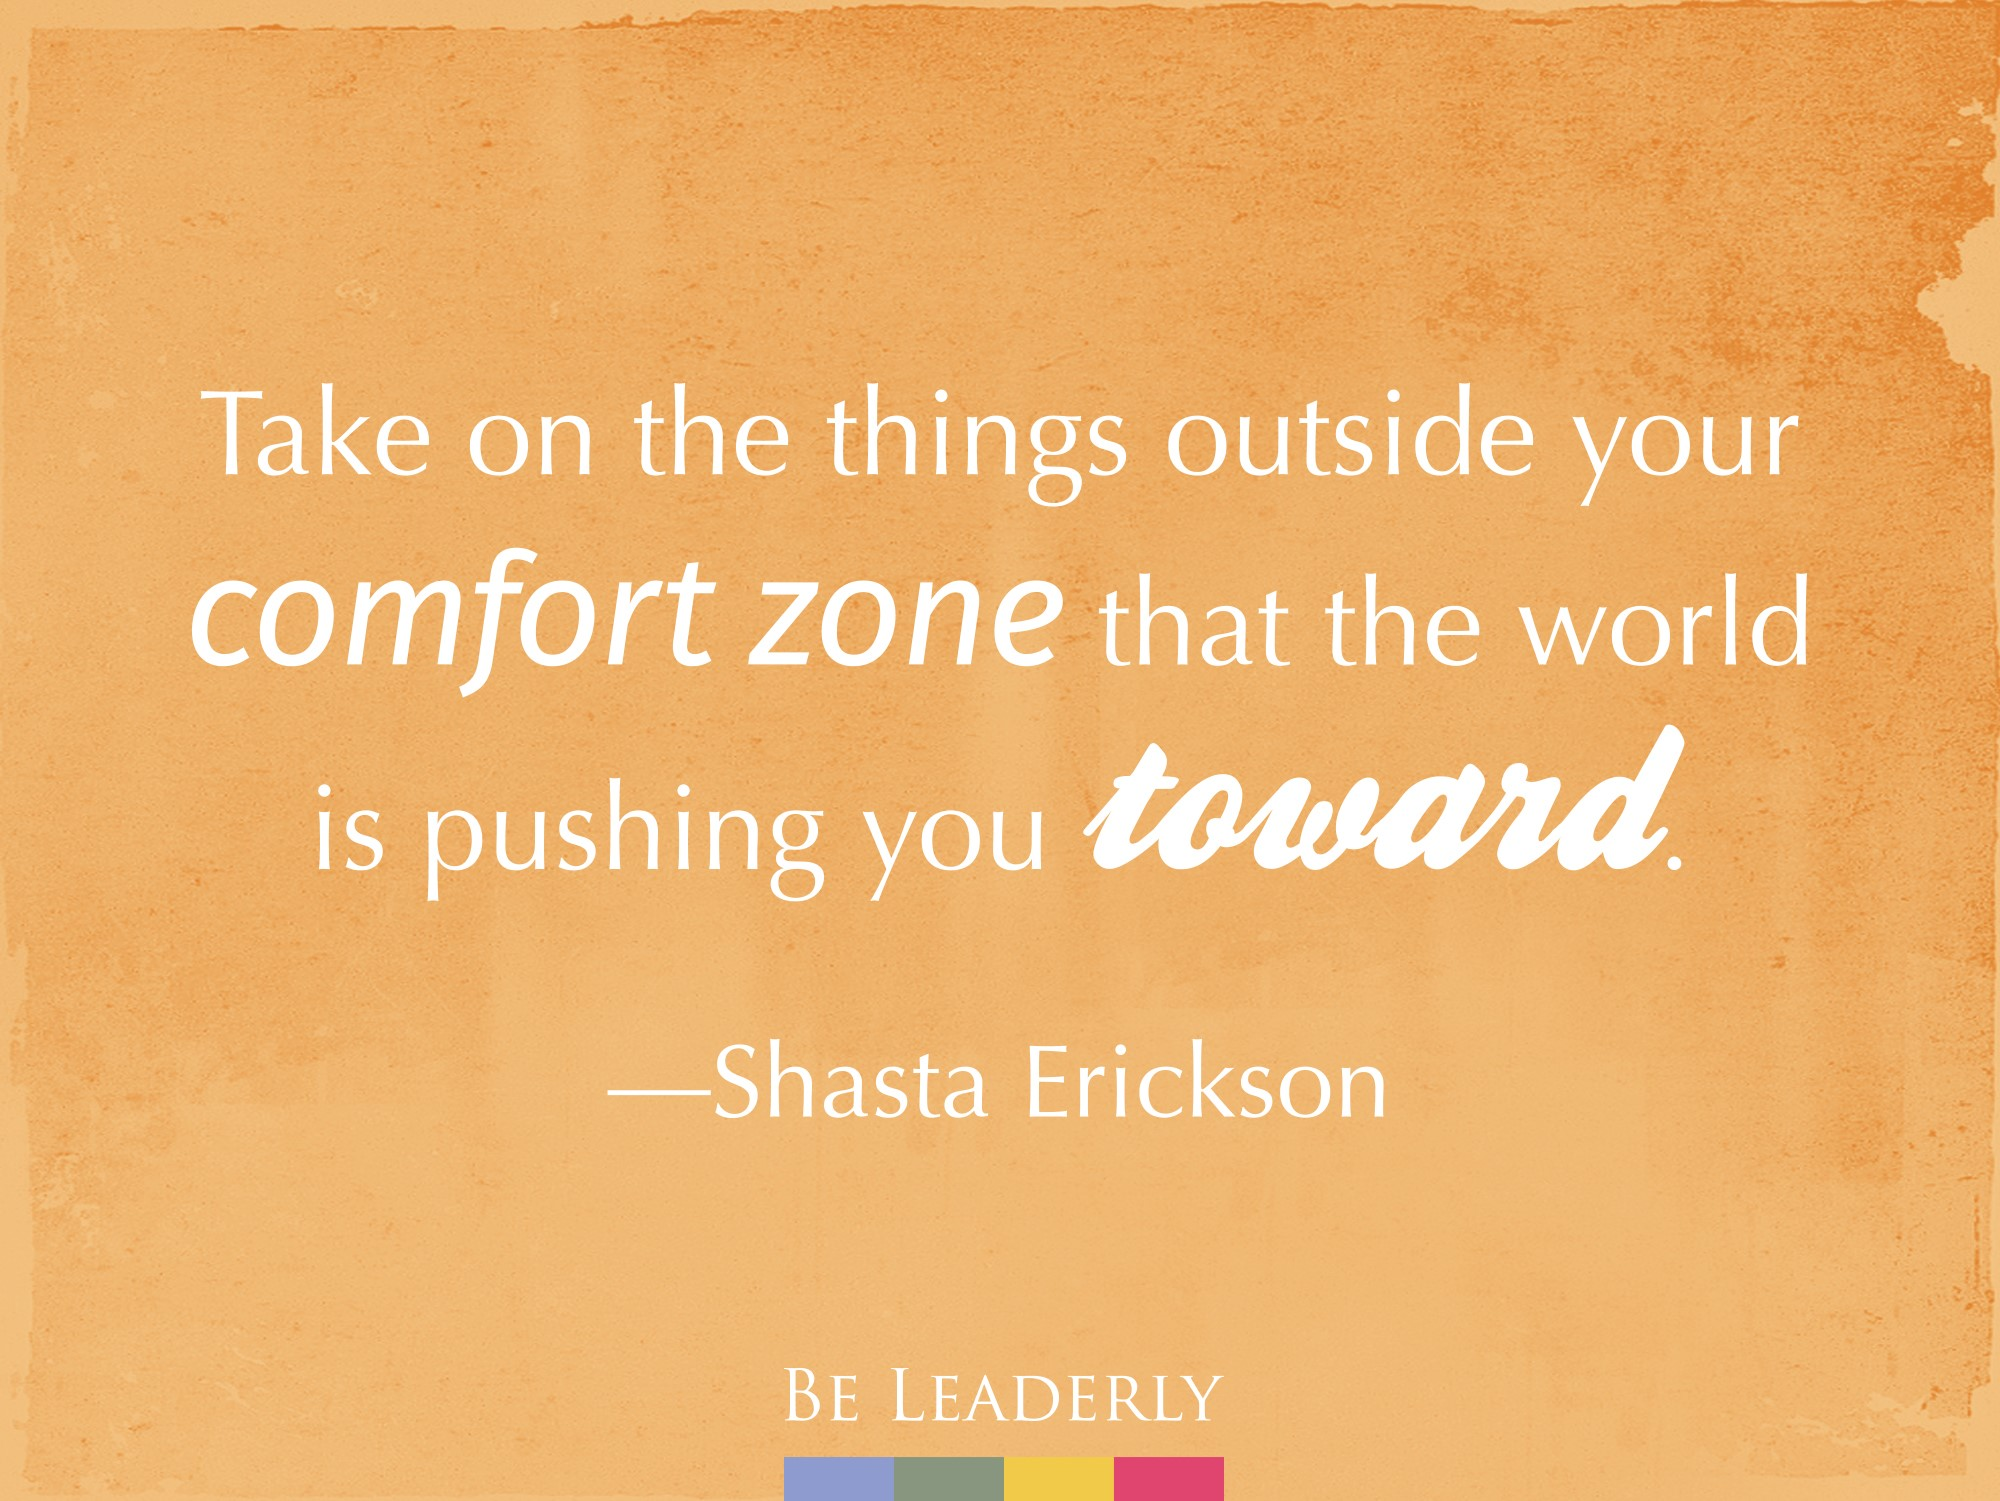 Take on things outside your comfort zone